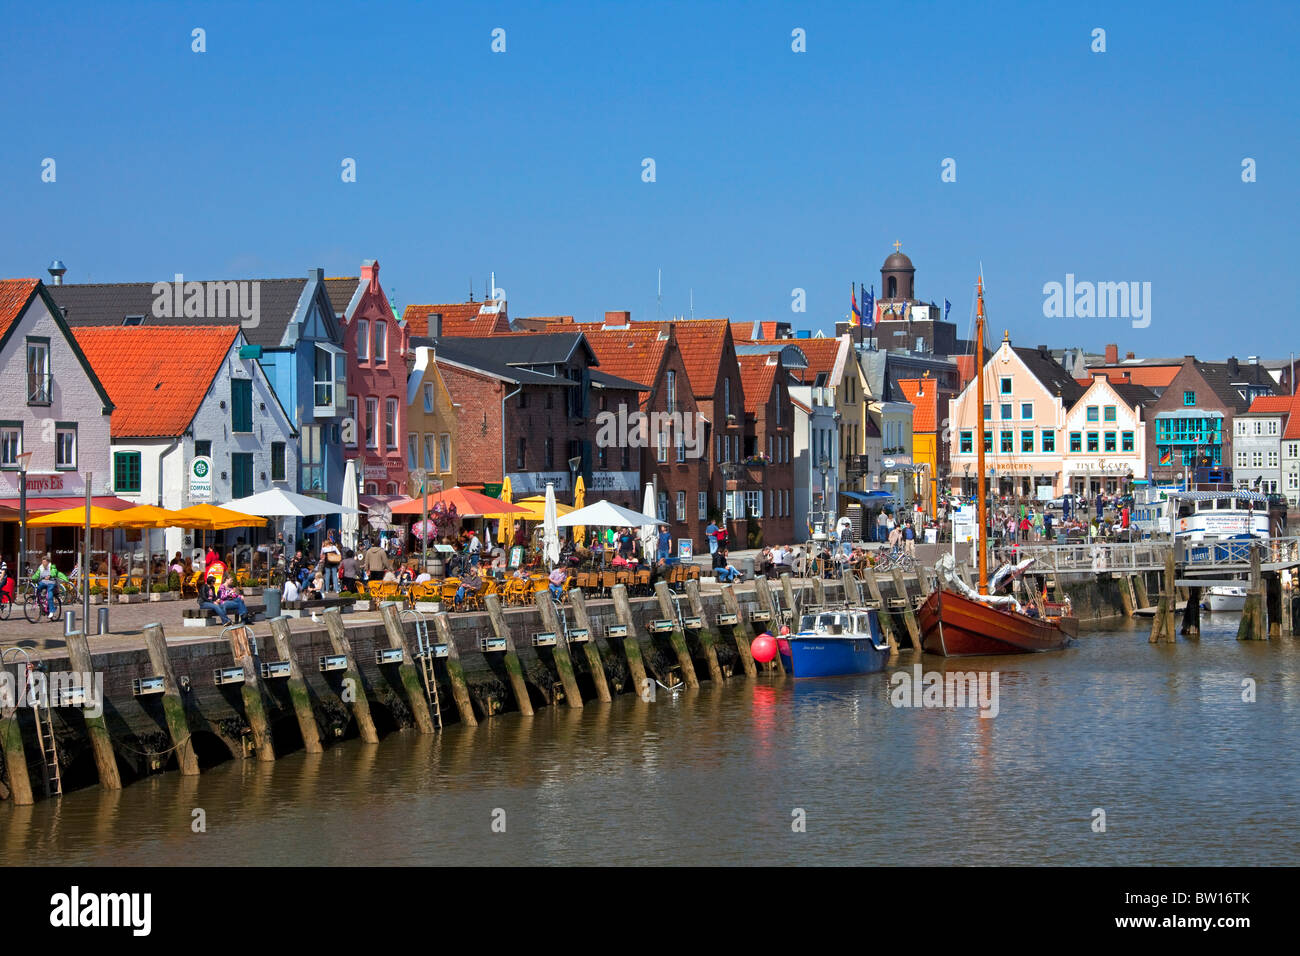 The fishing port of the town Husum along the North Sea, Germany - Stock Image